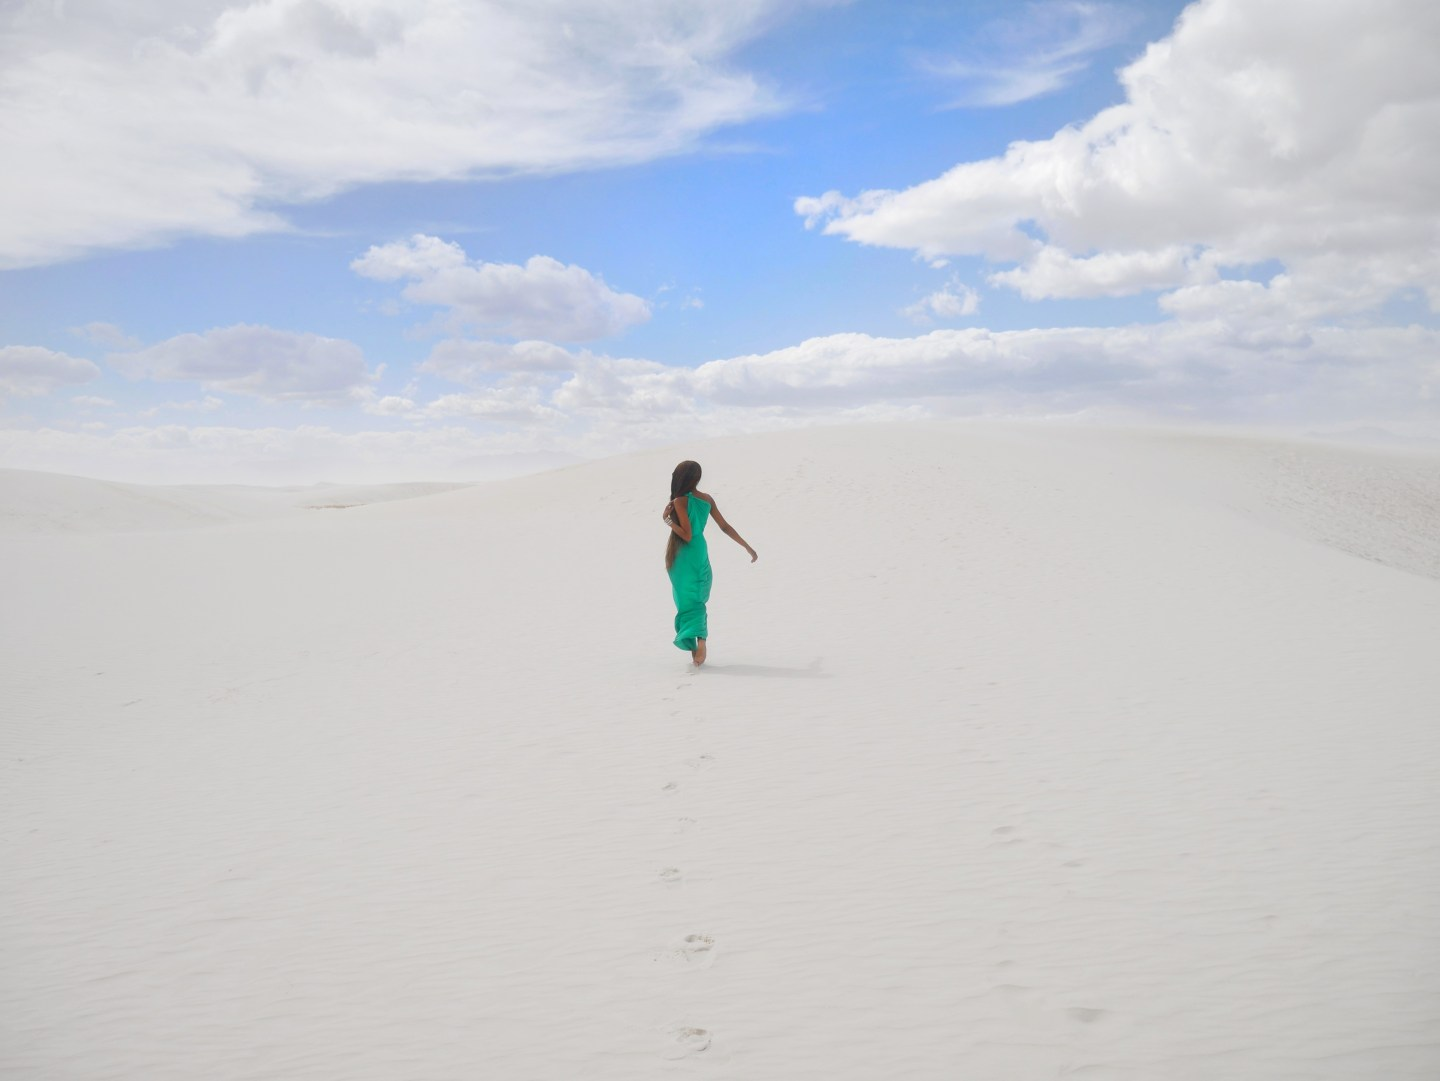 Things to Do in Stunning White Sands New Mexico